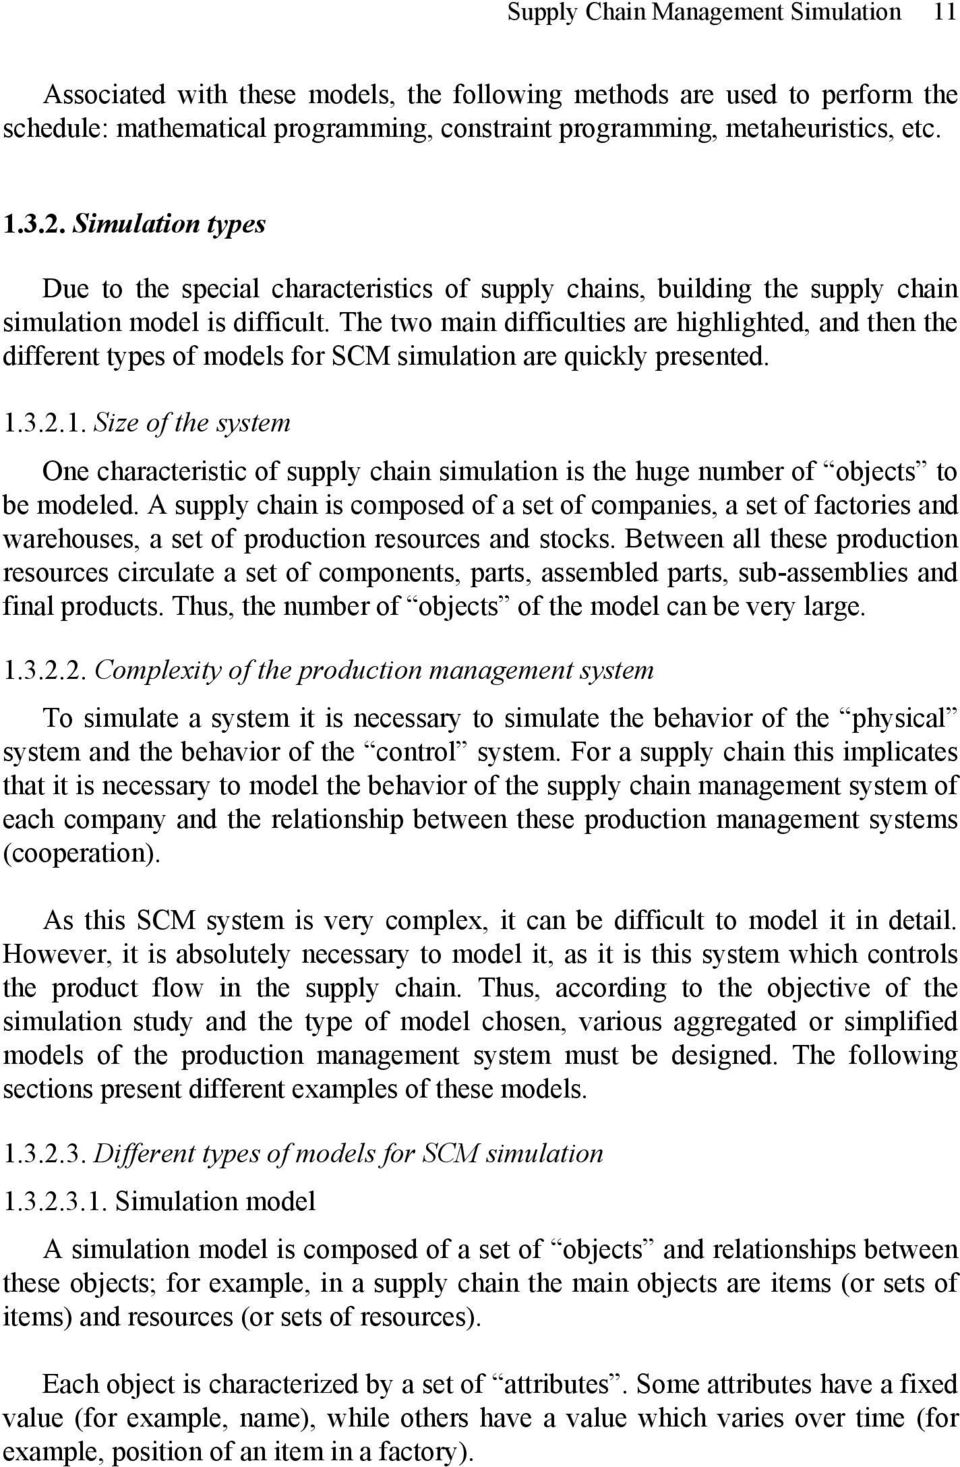 Supply Chain Management Simulation: An Overview - PDF